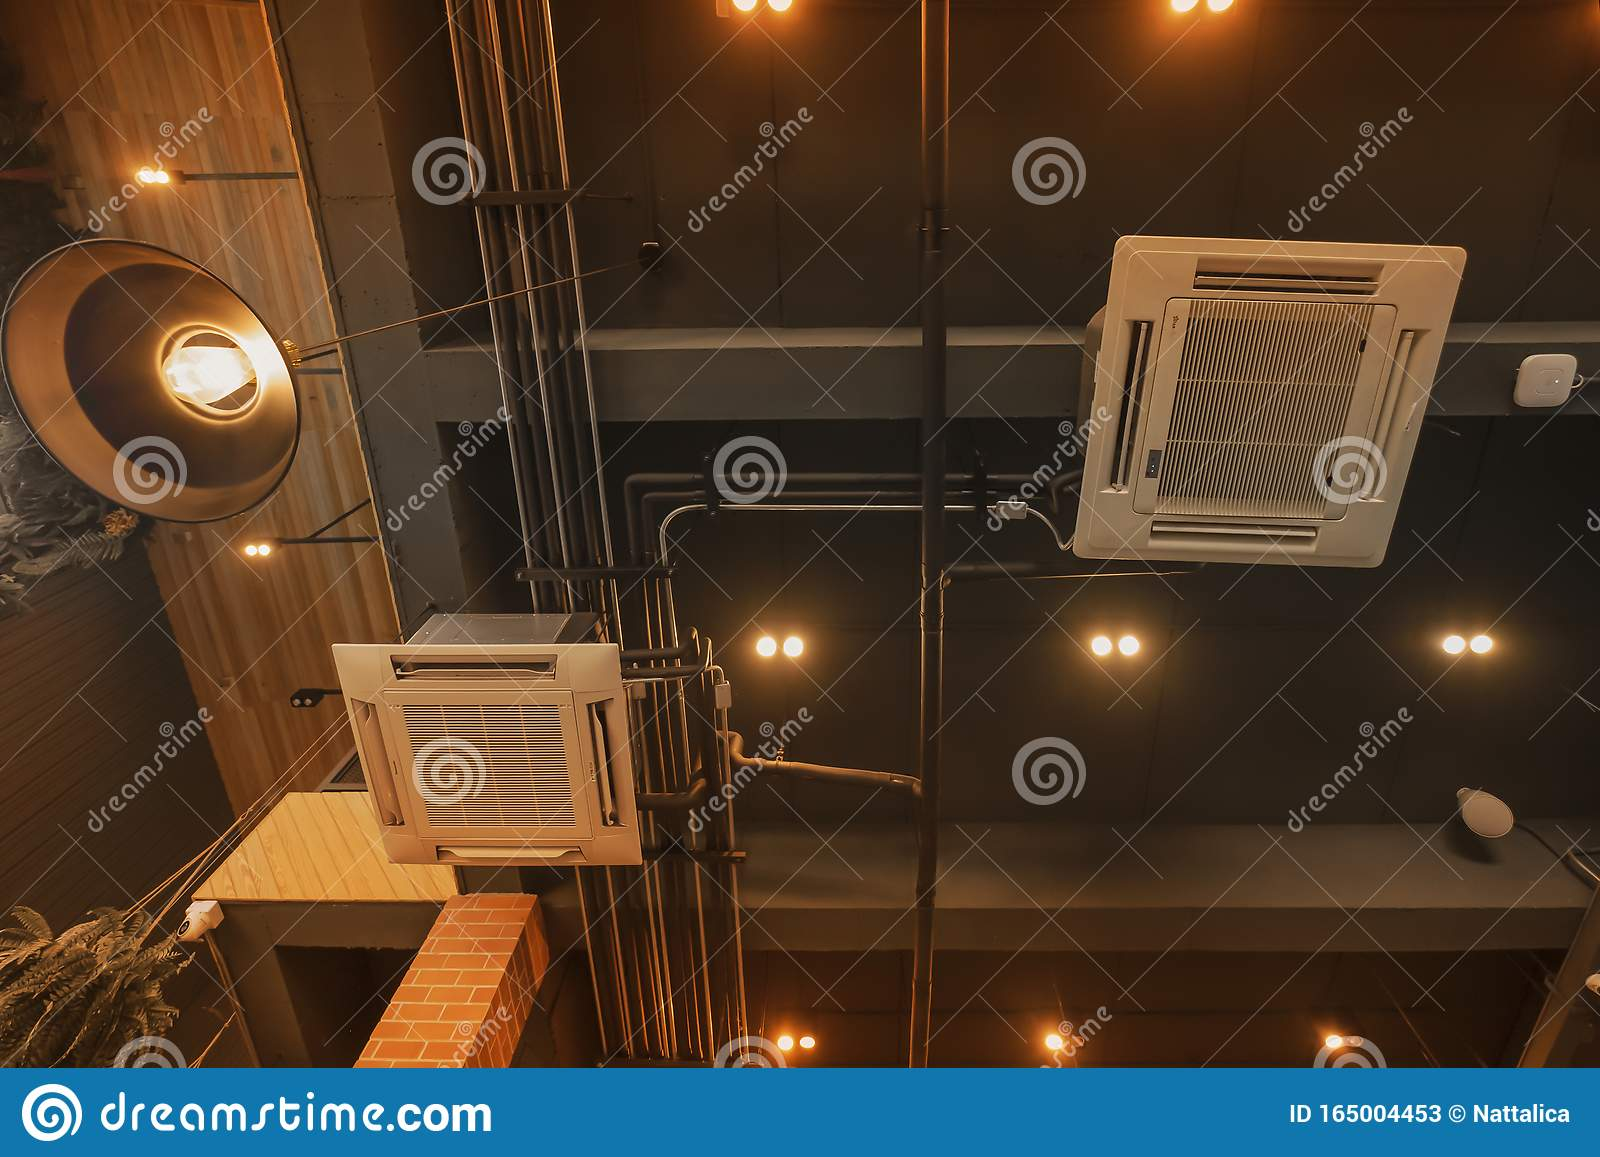 Inverter Air Conditioner Interior Design With Modern Loft Style Of Coffee Shop Stock Image Image Of Coffee Condition 165004453